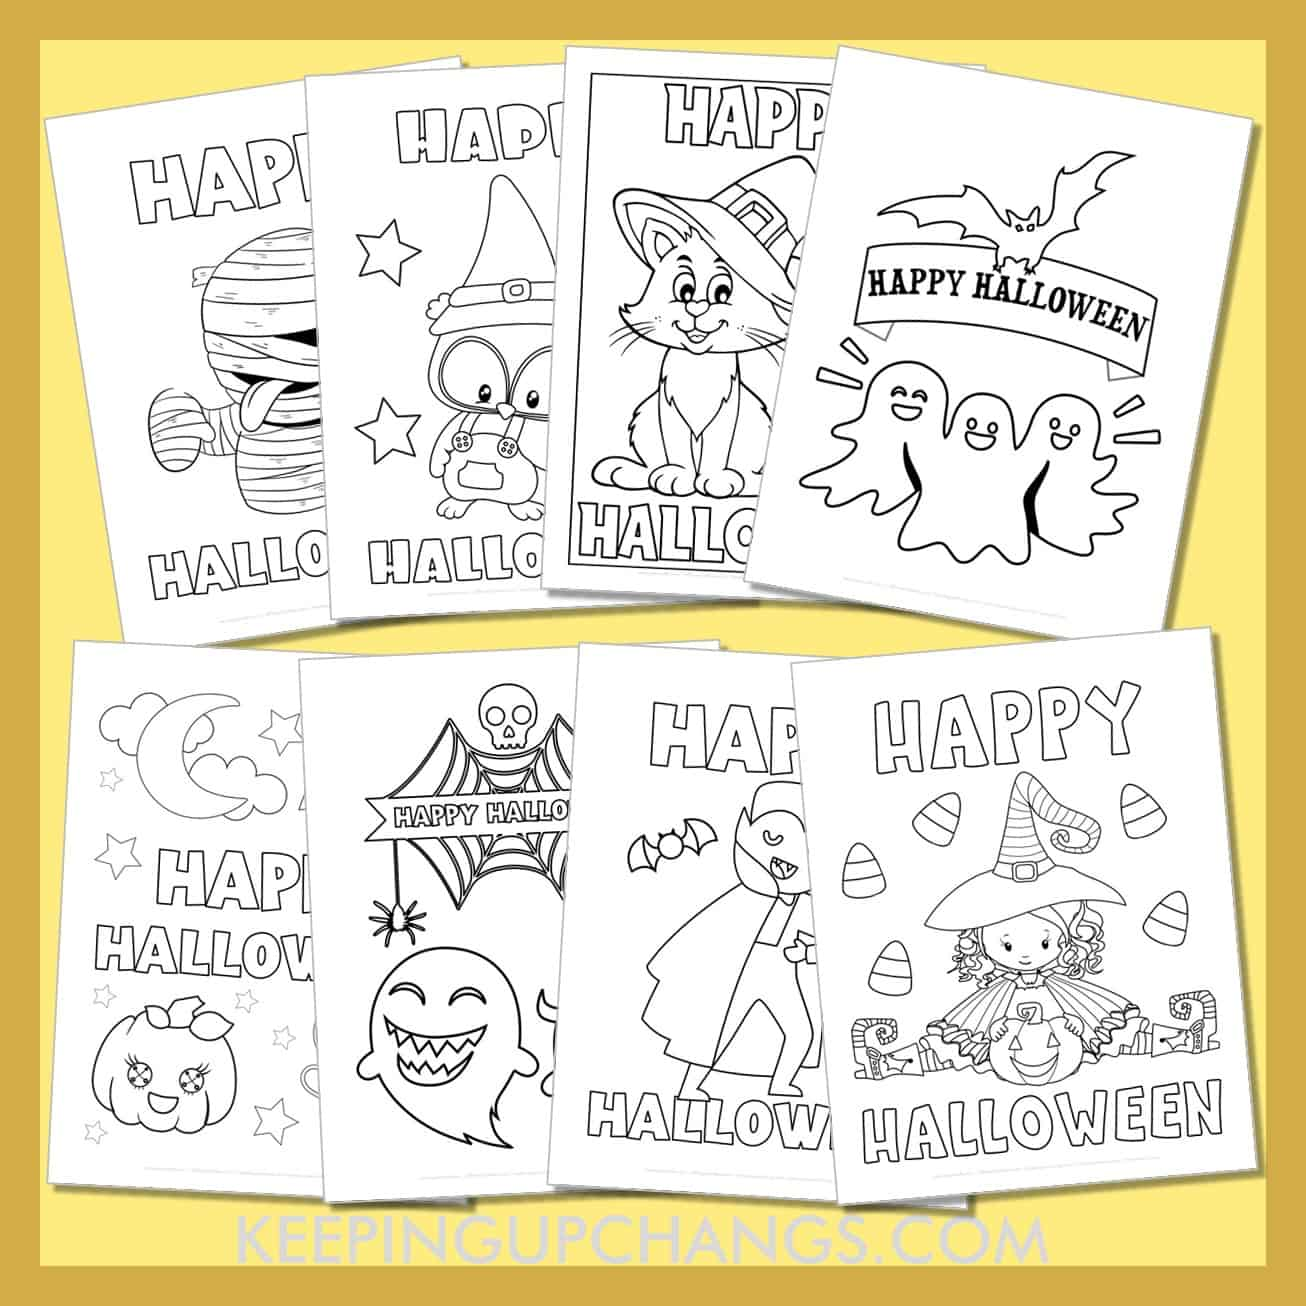 happy halloween colouring sheets including haunted house, pumpkin, witch, cat and more.